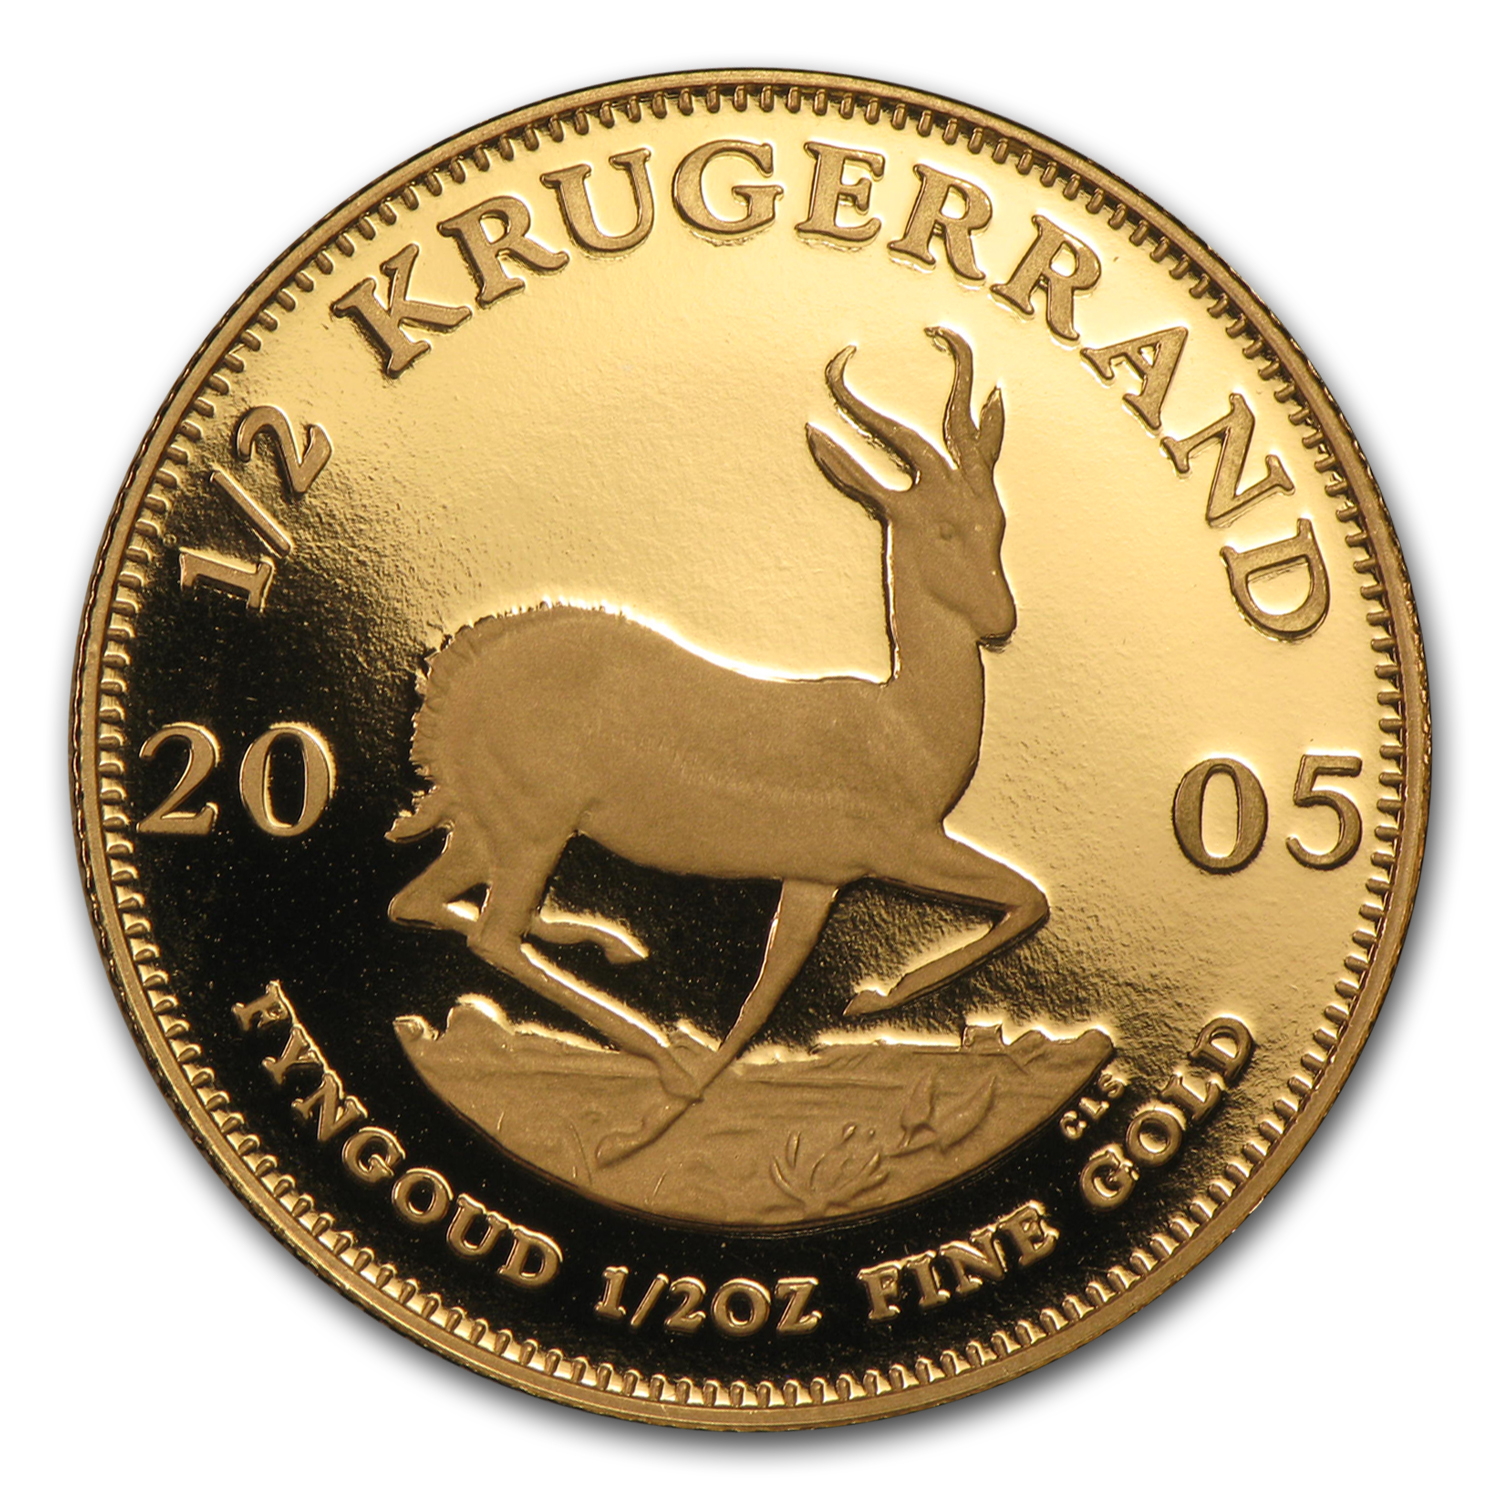 2005 1/2 oz Gold South African Krugerrand (Proof)